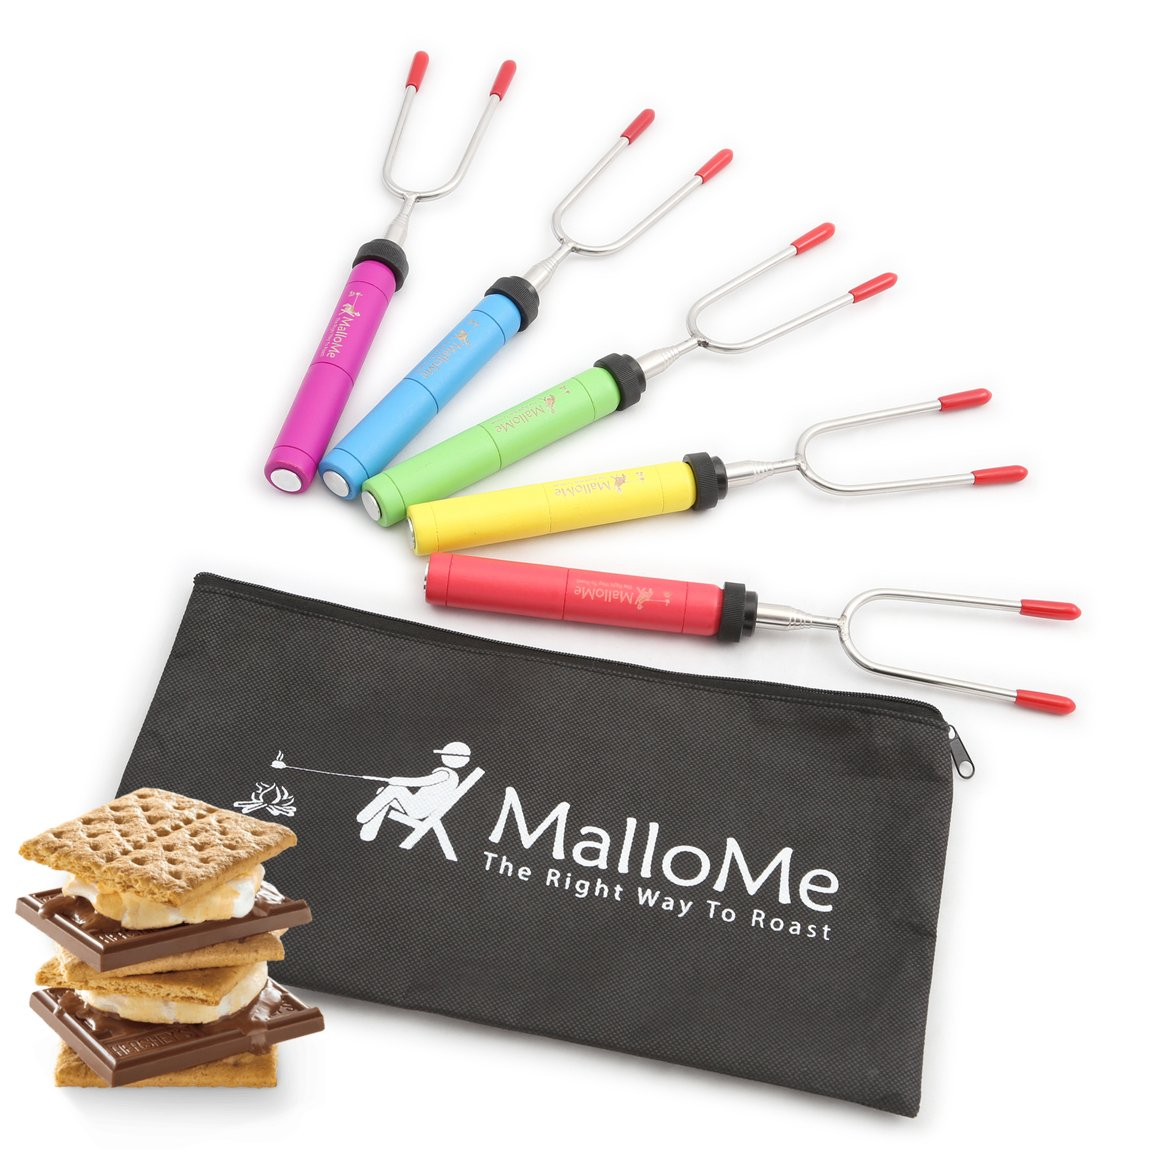 MalloMe Premium Marshmallow Roasting Sticks Set of 5 Smores Skewers & Hot Dog Fork 34 Inch Rotating & Telescoping Patio Fire Pit Camping Cookware Campfire Cooking Kids Accessories - Bonus Bag & Ebook 5FORKSET